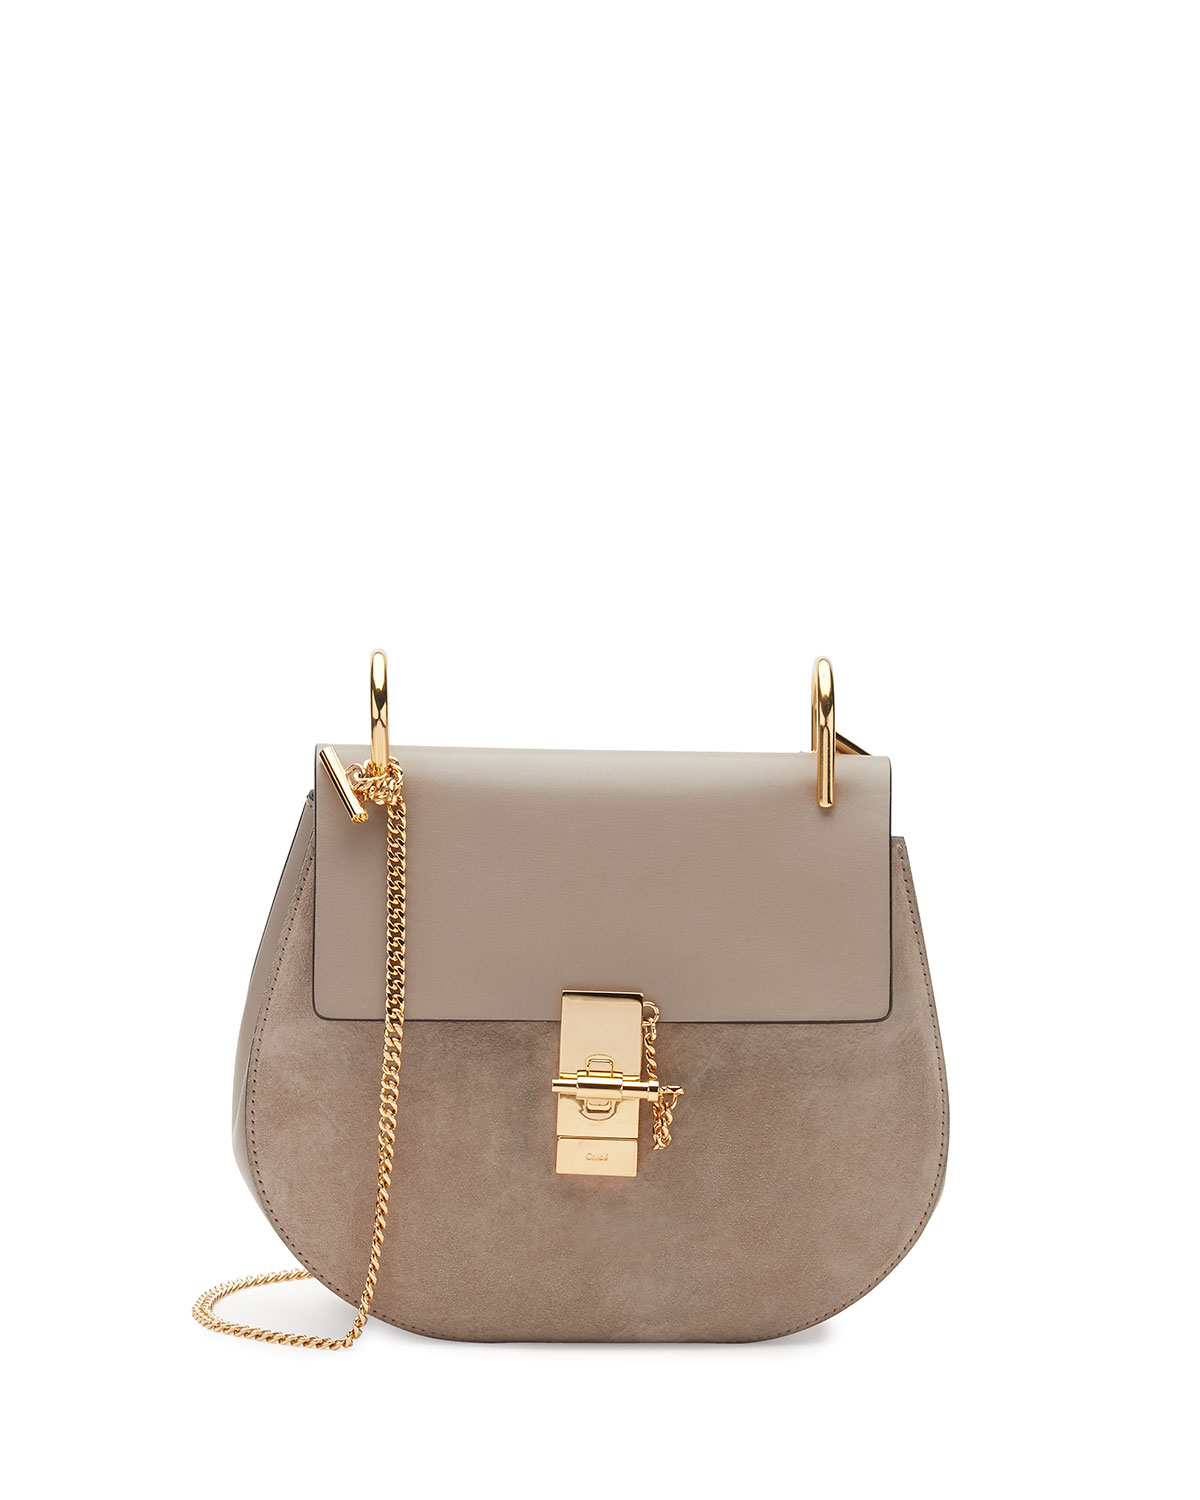 9d5c8109175ed Chloe Drew Small Chain Saddle Bag | Neiman Marcus